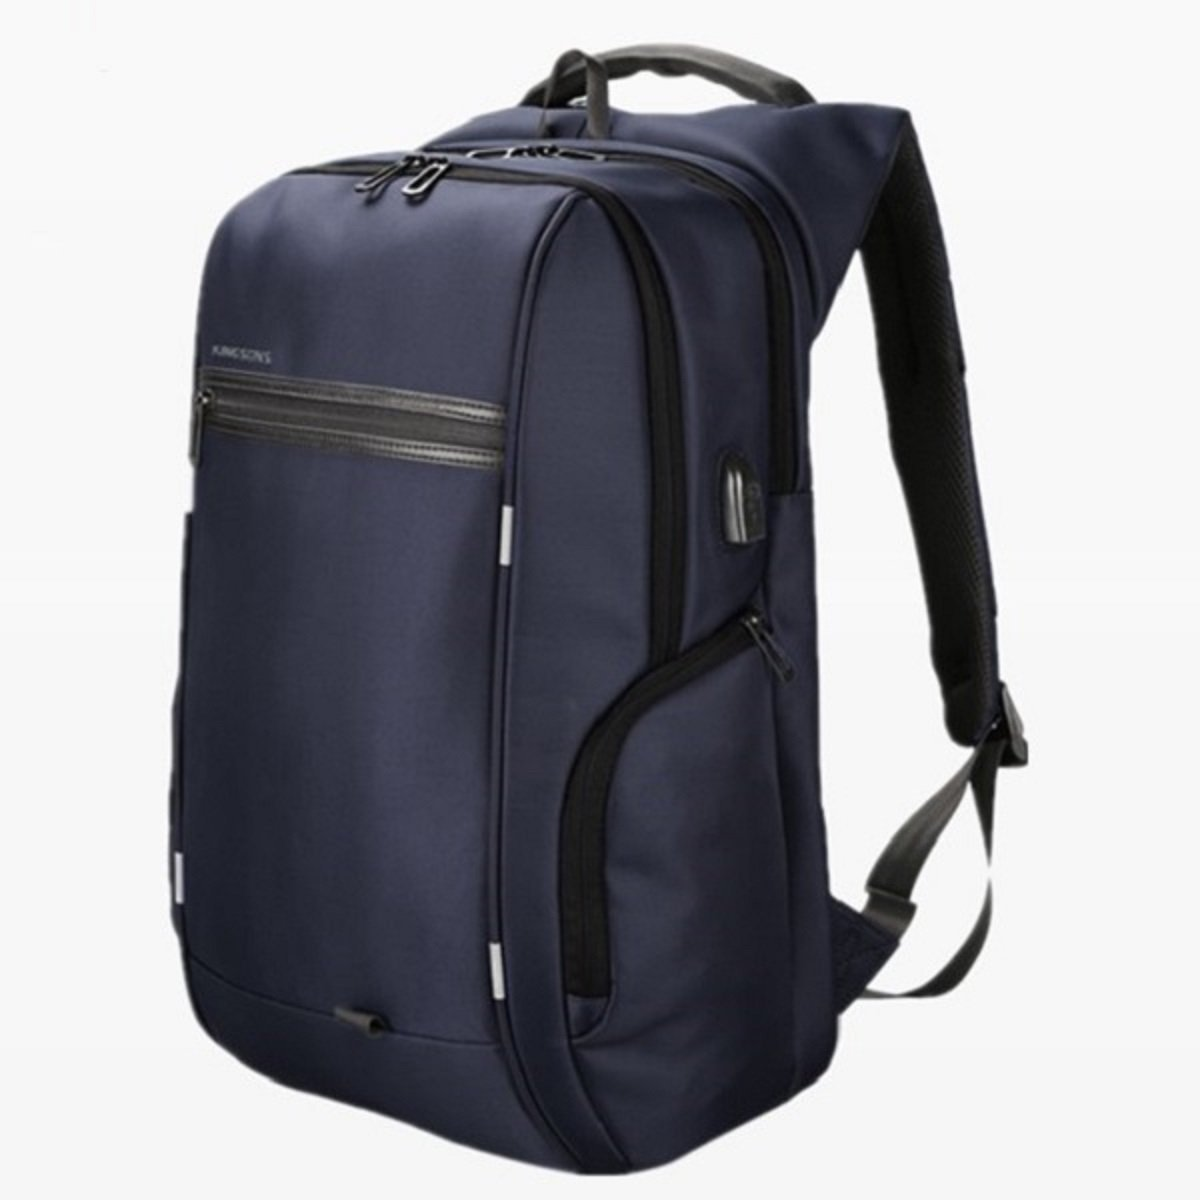 Deluxe Water Resistant Nylon Day Pack